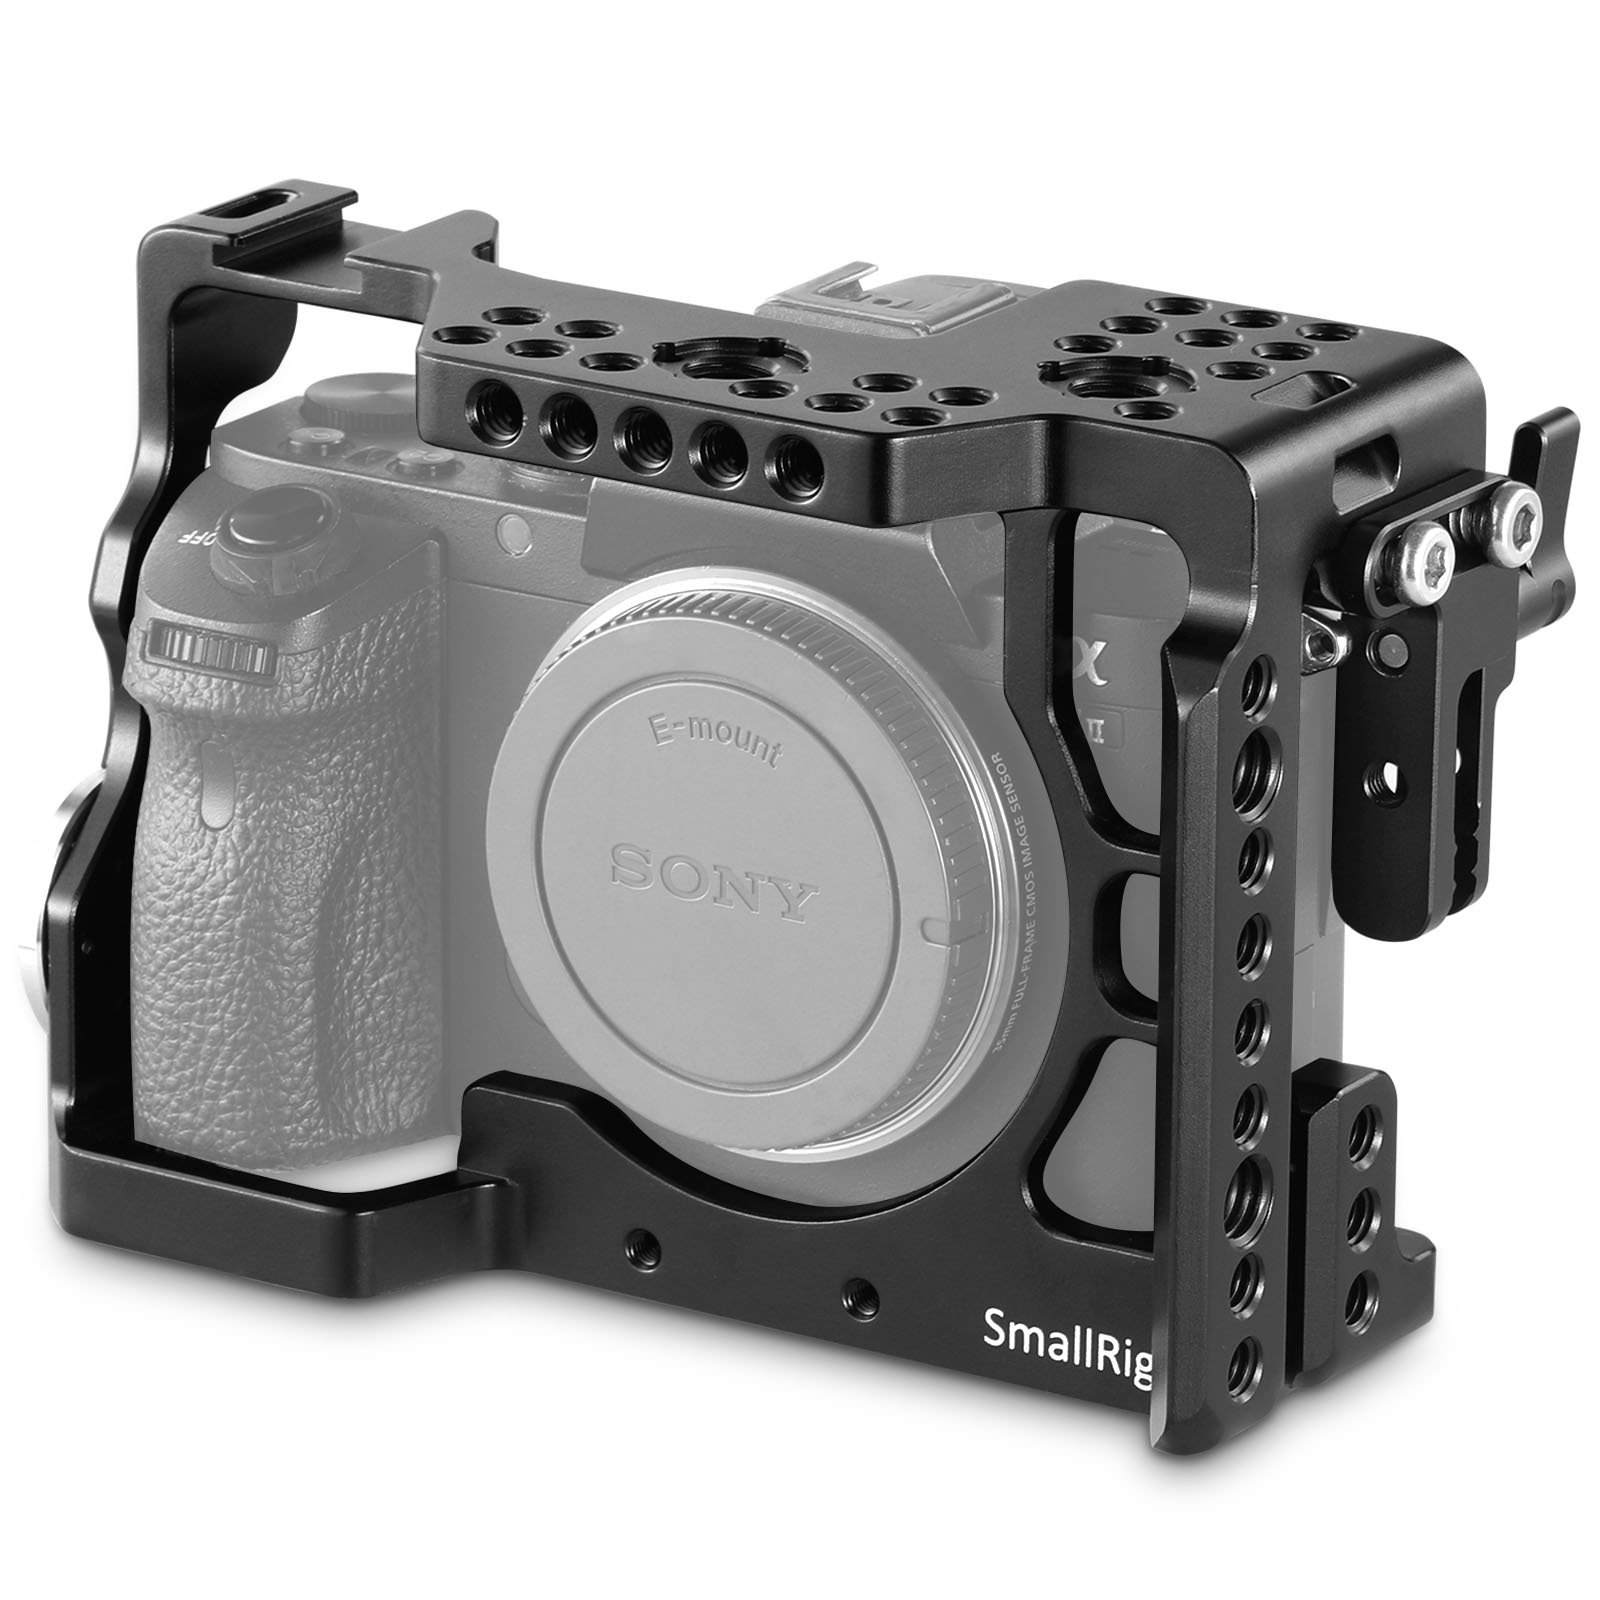 Smallrig 1982 Cage For Sony A7ii/a7rii/a7sii With Hdmi Ca...